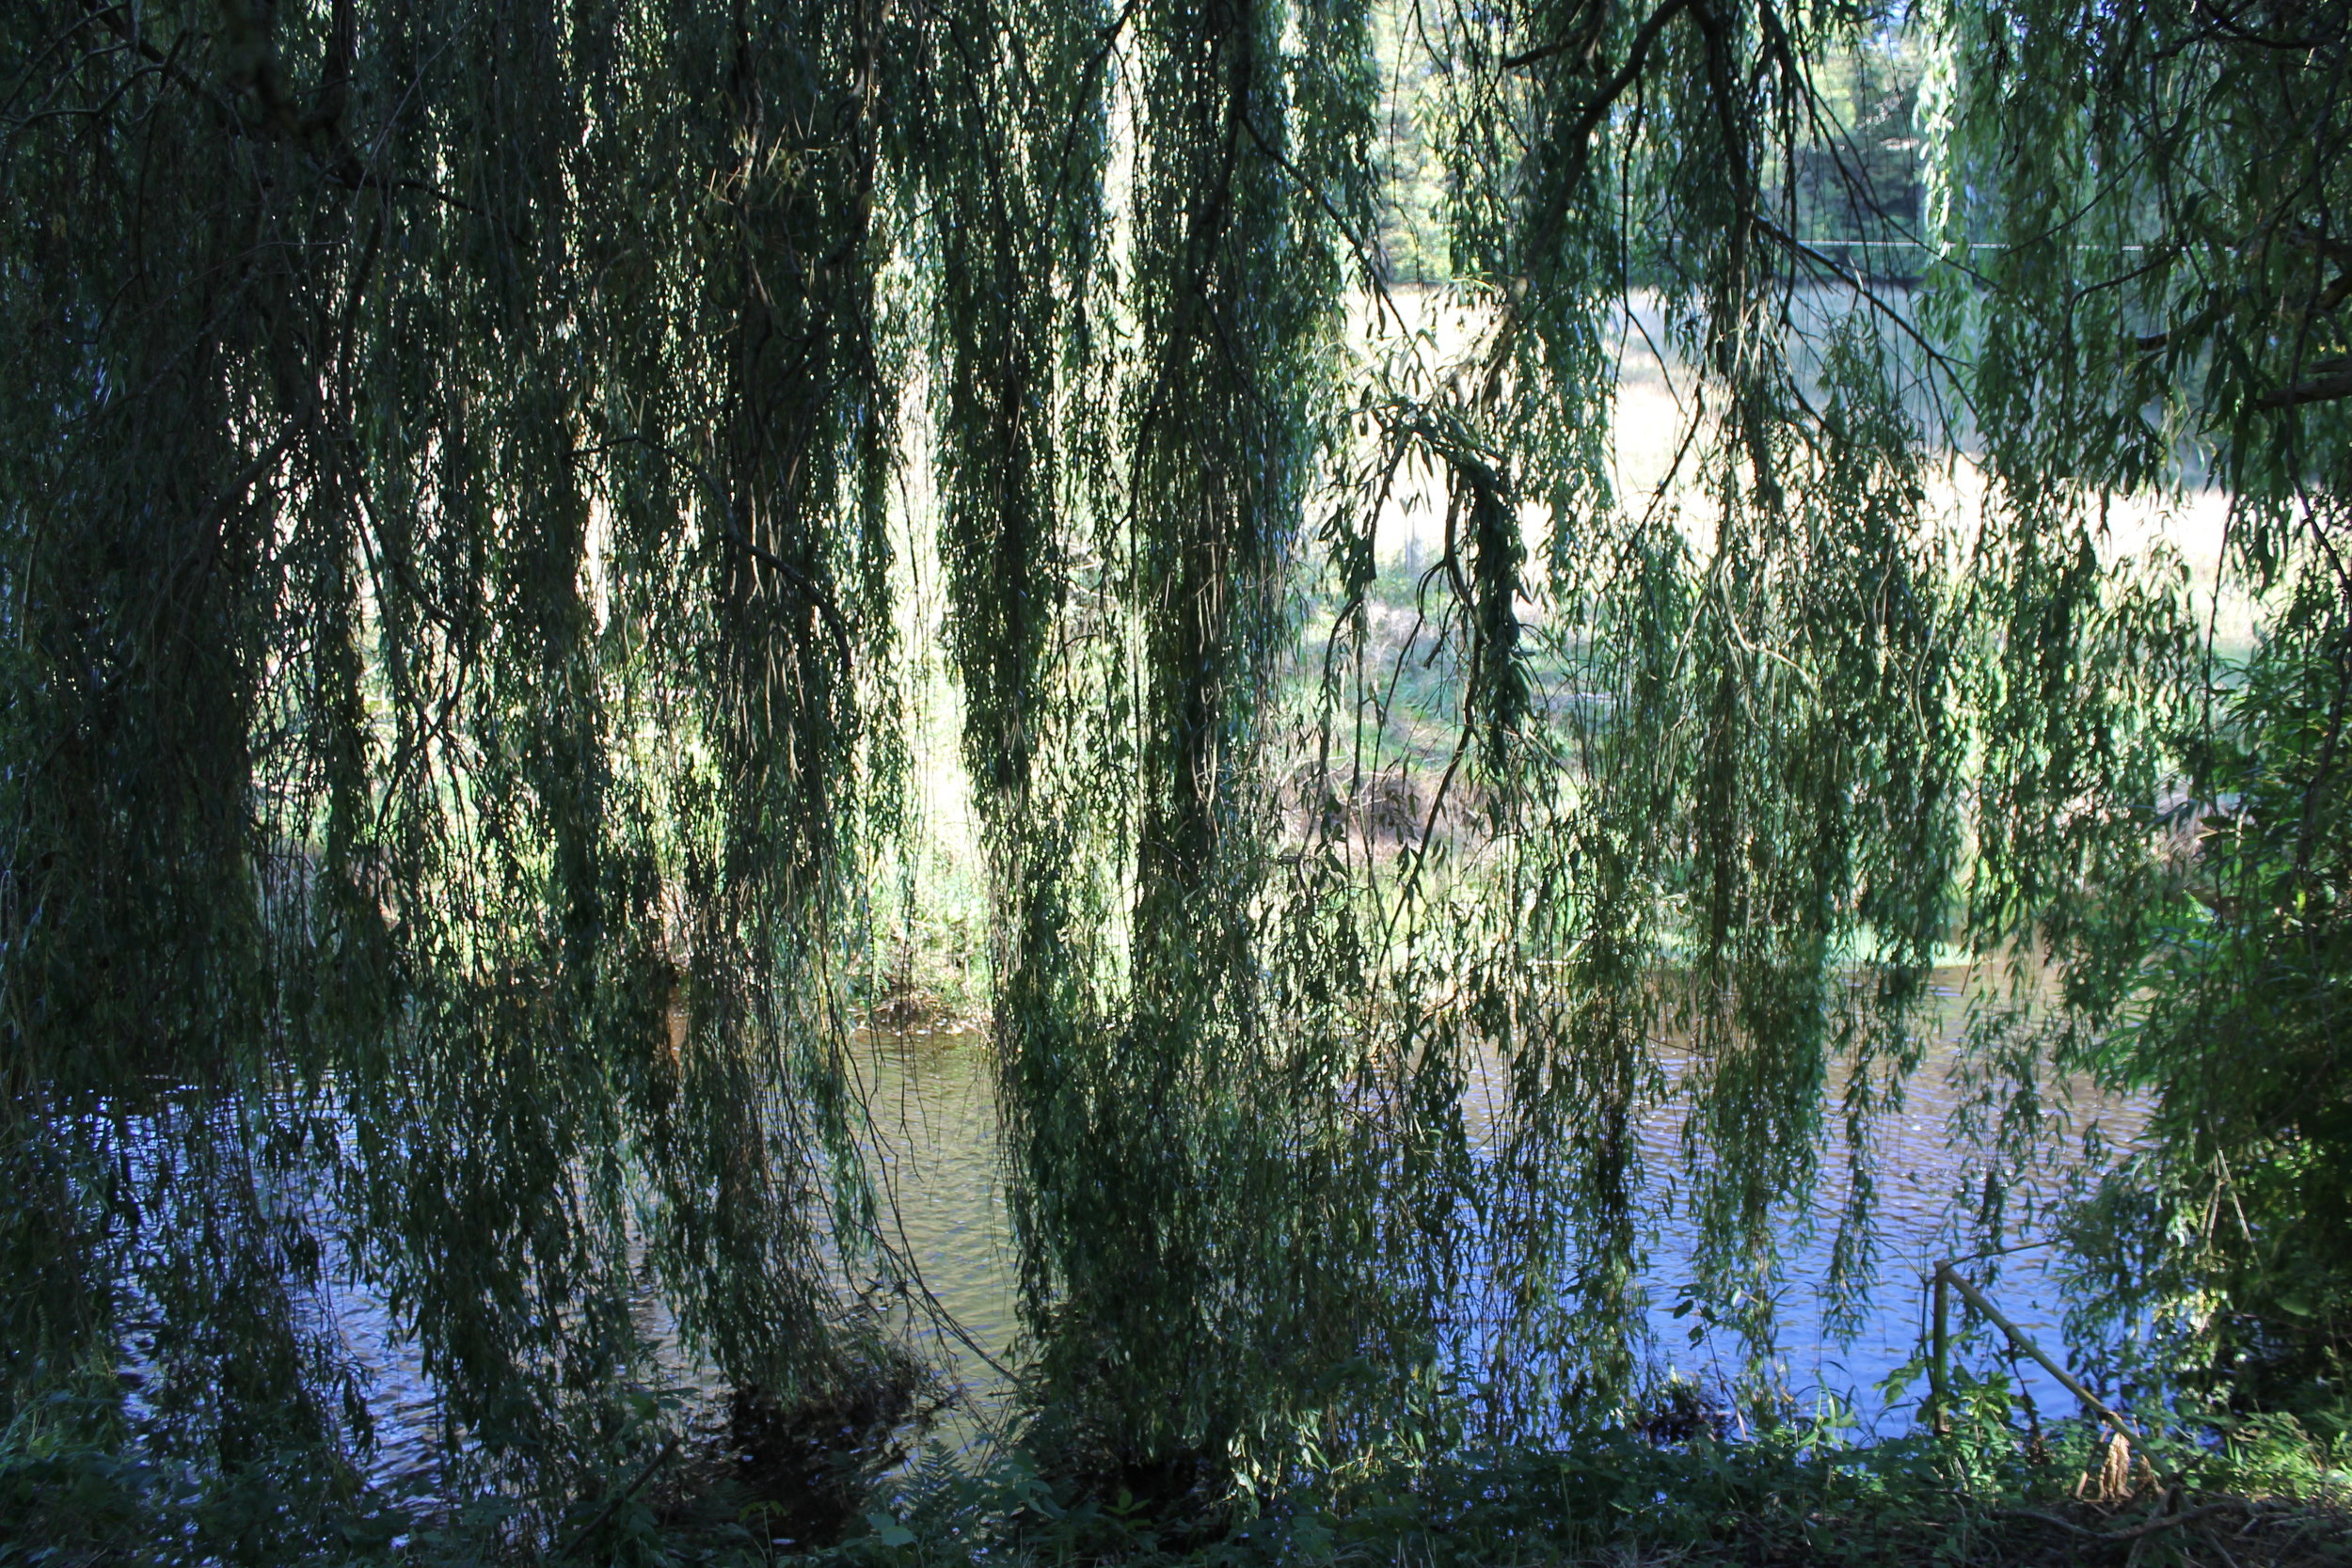 The willow tree by our river